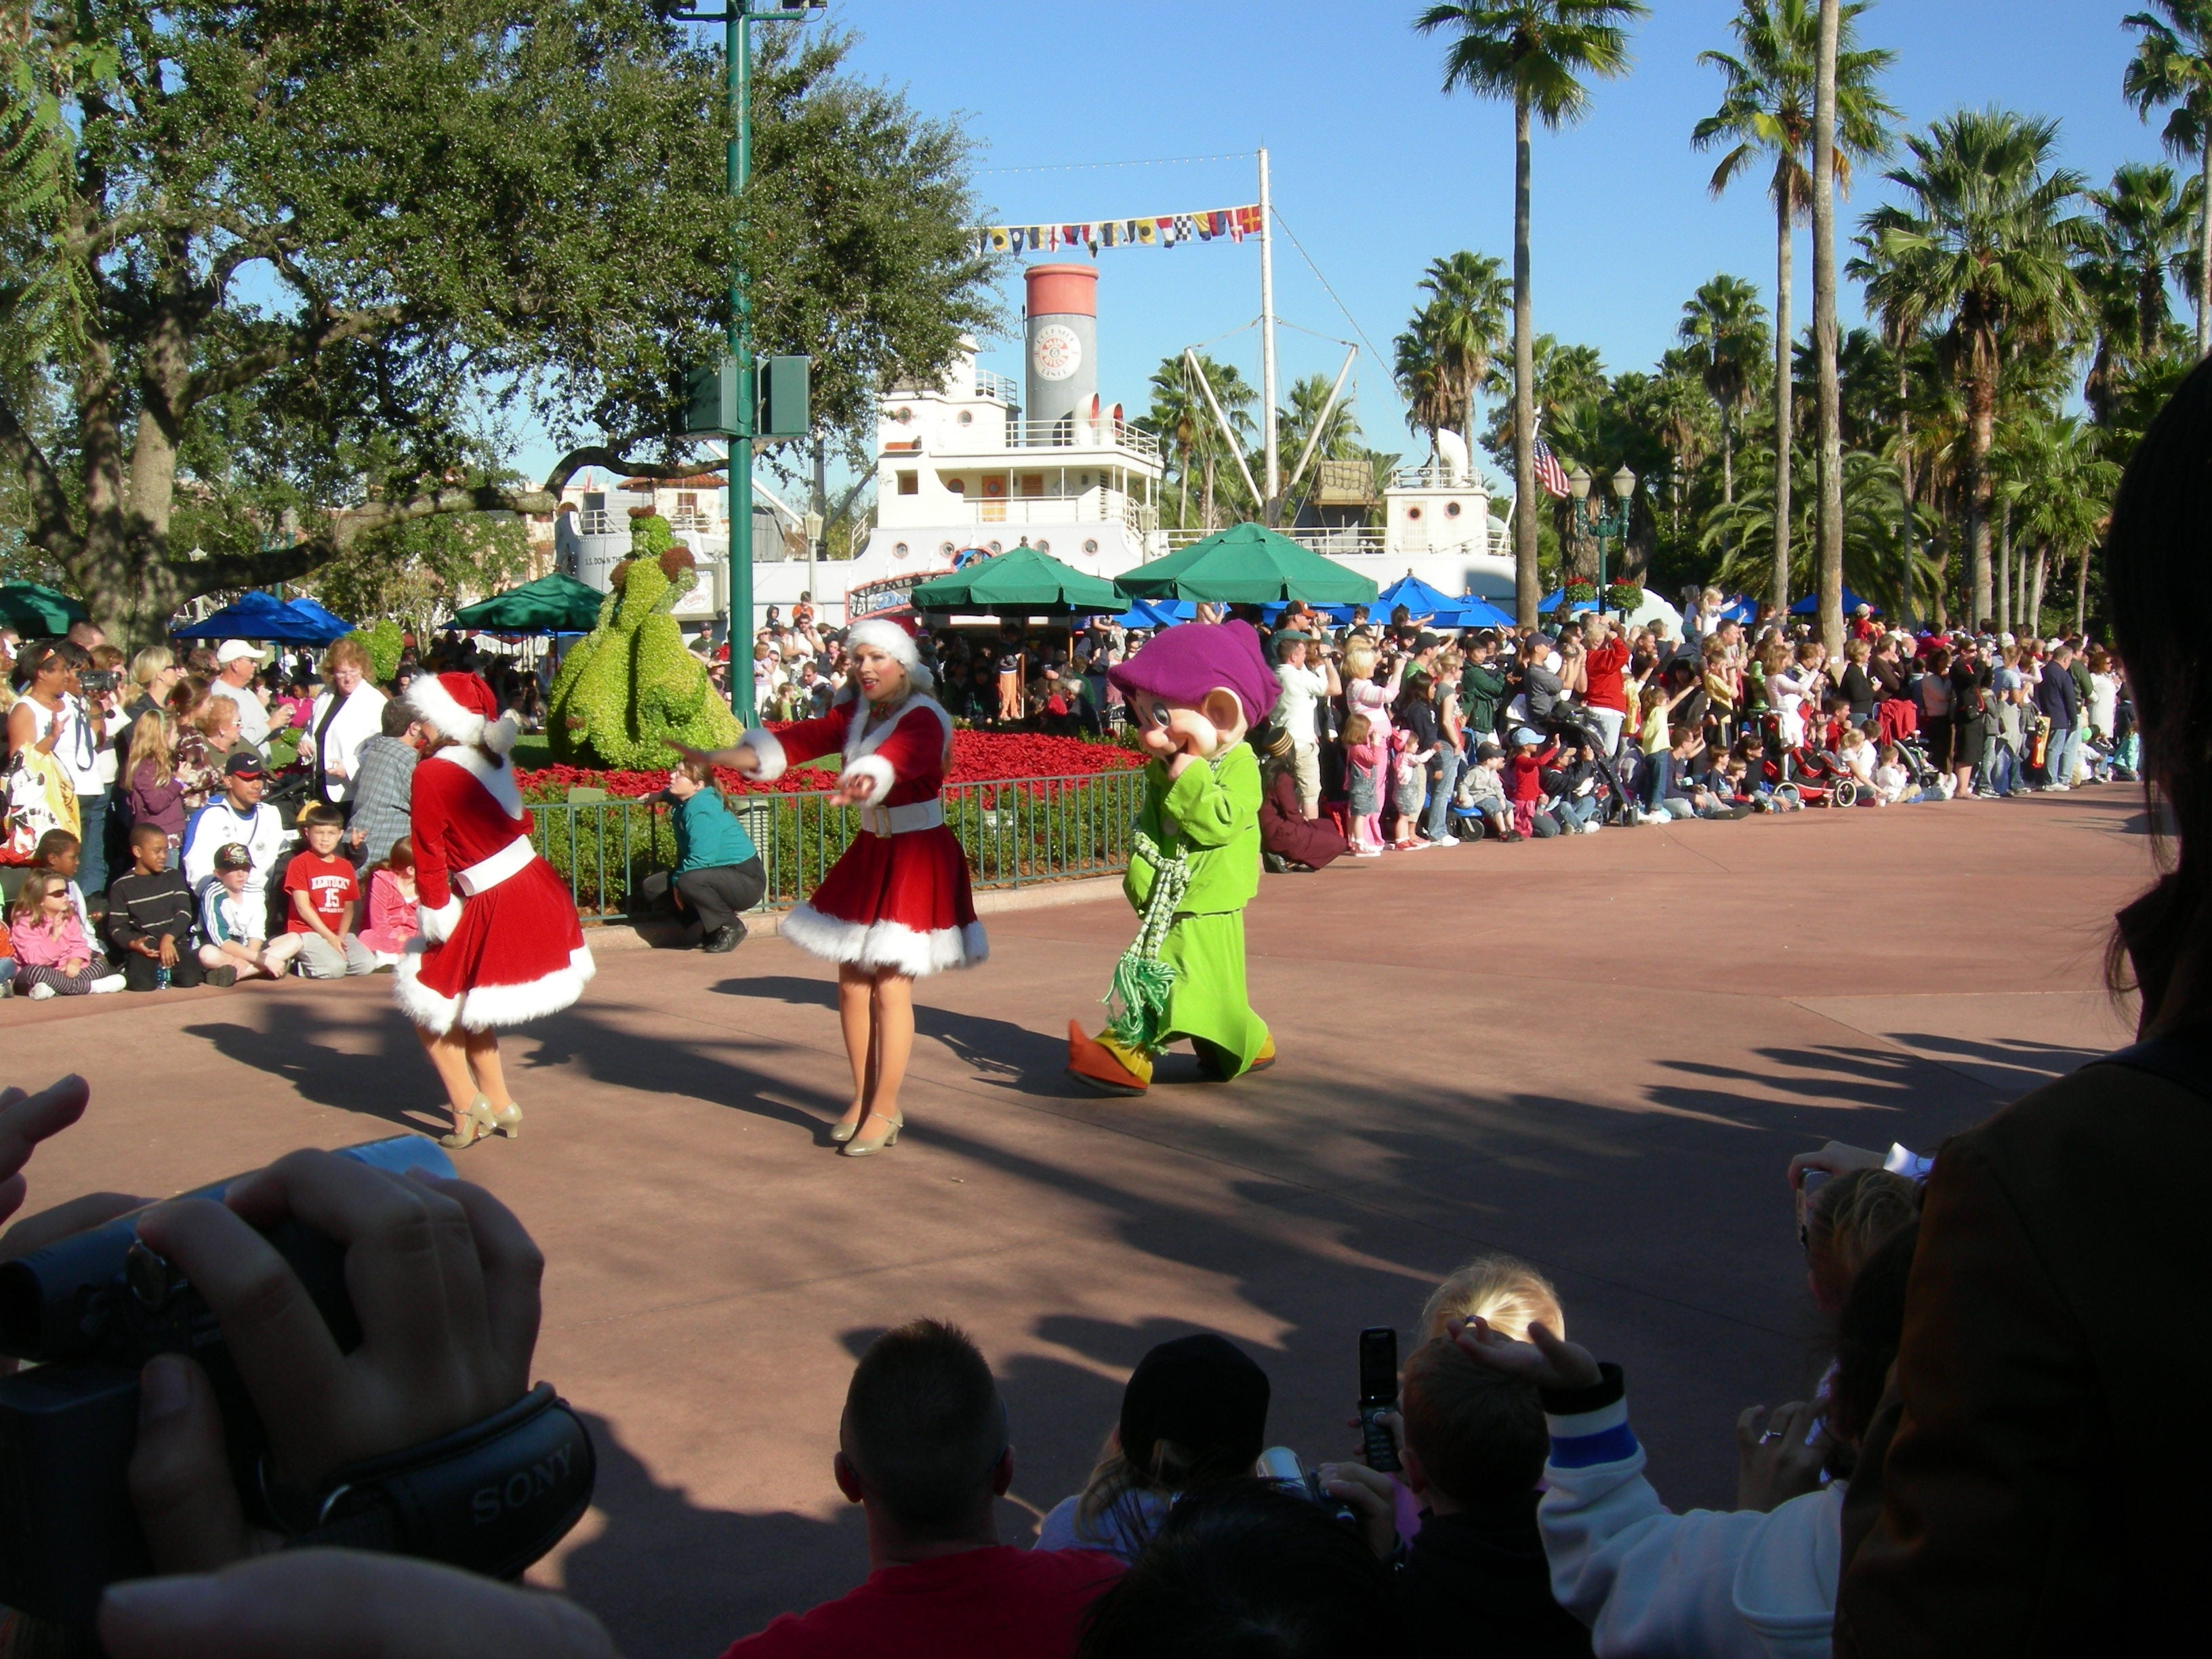 Multitud en Disney Parades (desfiles en los parques de Disney World)